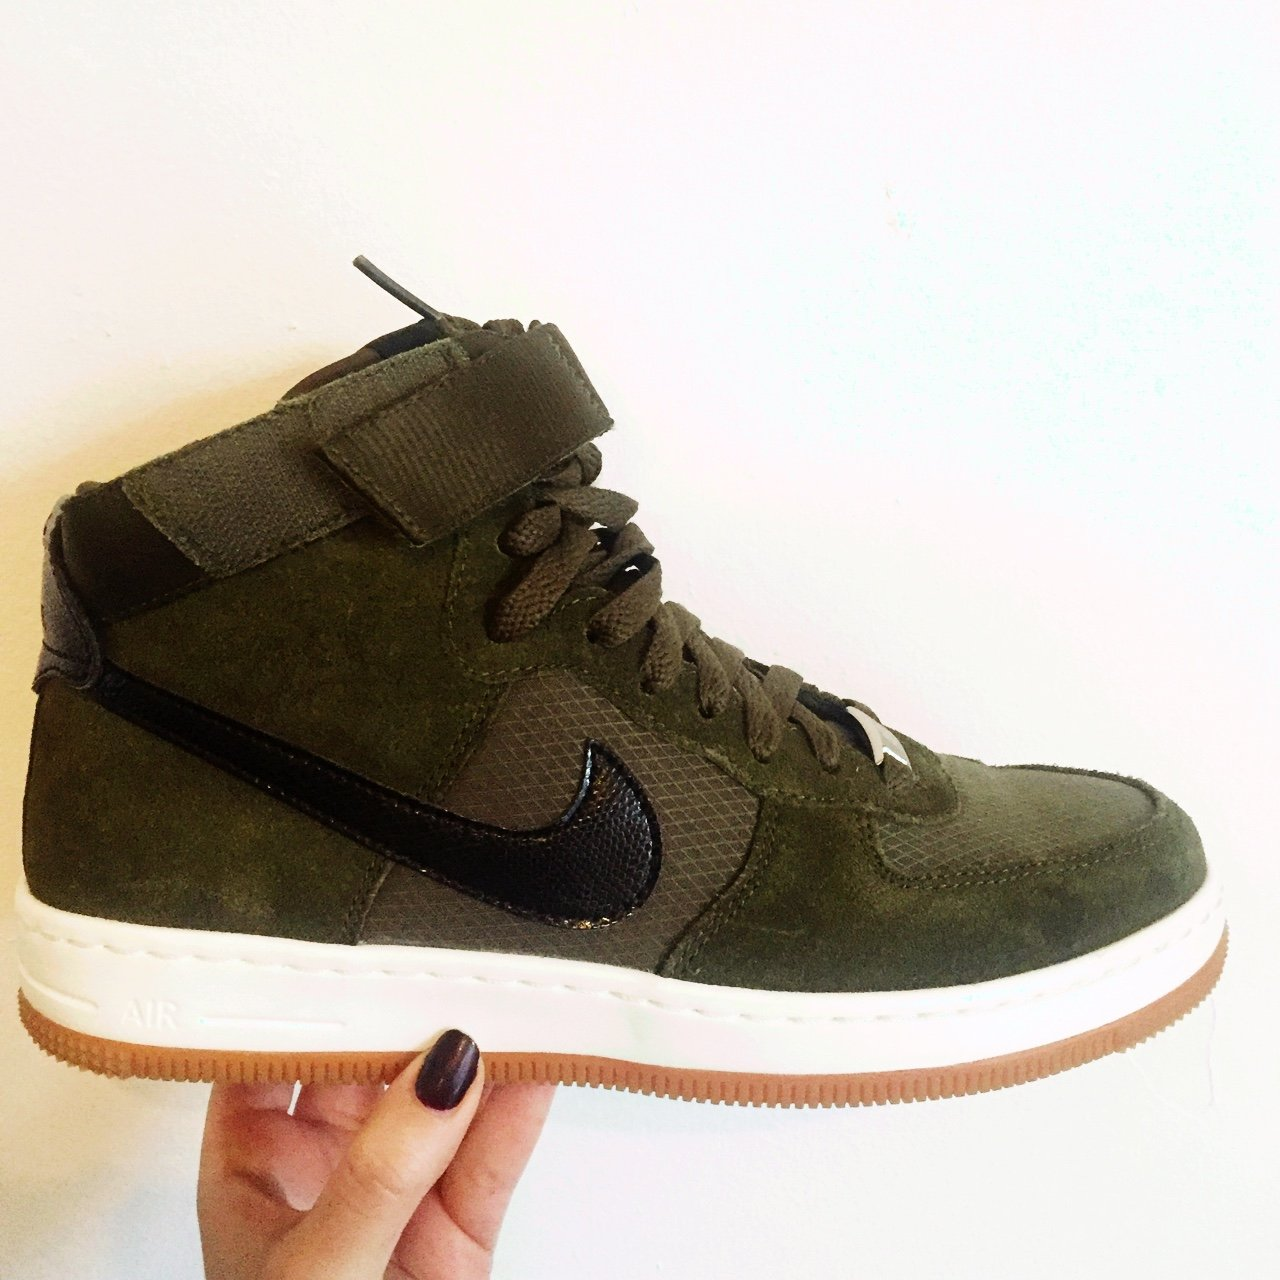 d4933d0baea3 NIKE AIR FORCE 1 HIGH OLIVE GREEN UK5 WOMENS. HARDLY  womens - Depop